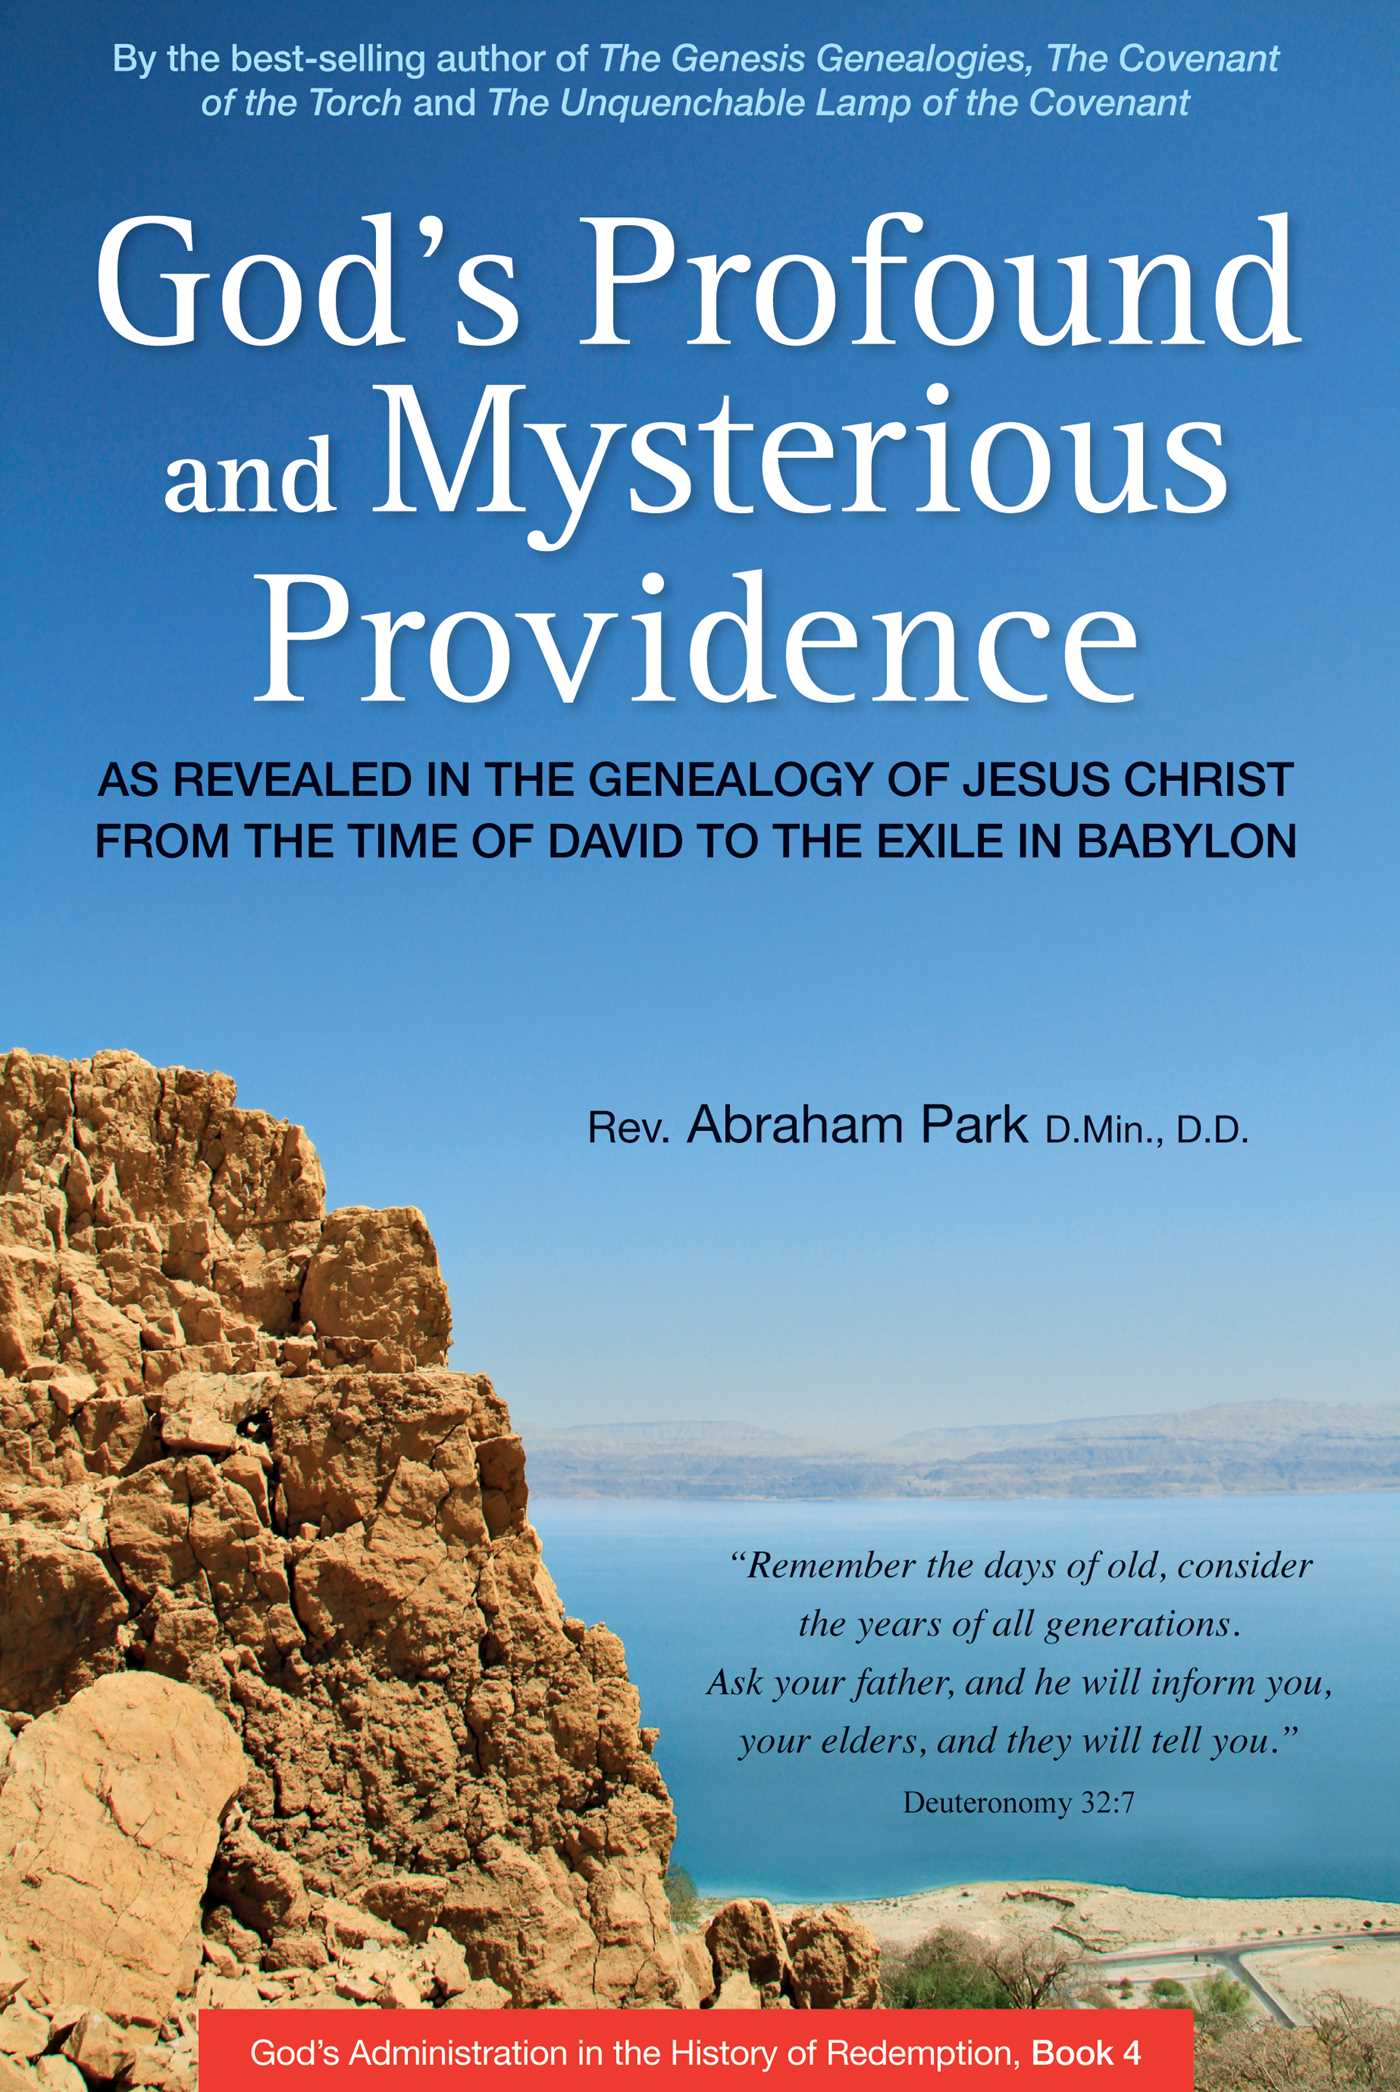 Gods profound and mysterious providence 9780804847926 hr